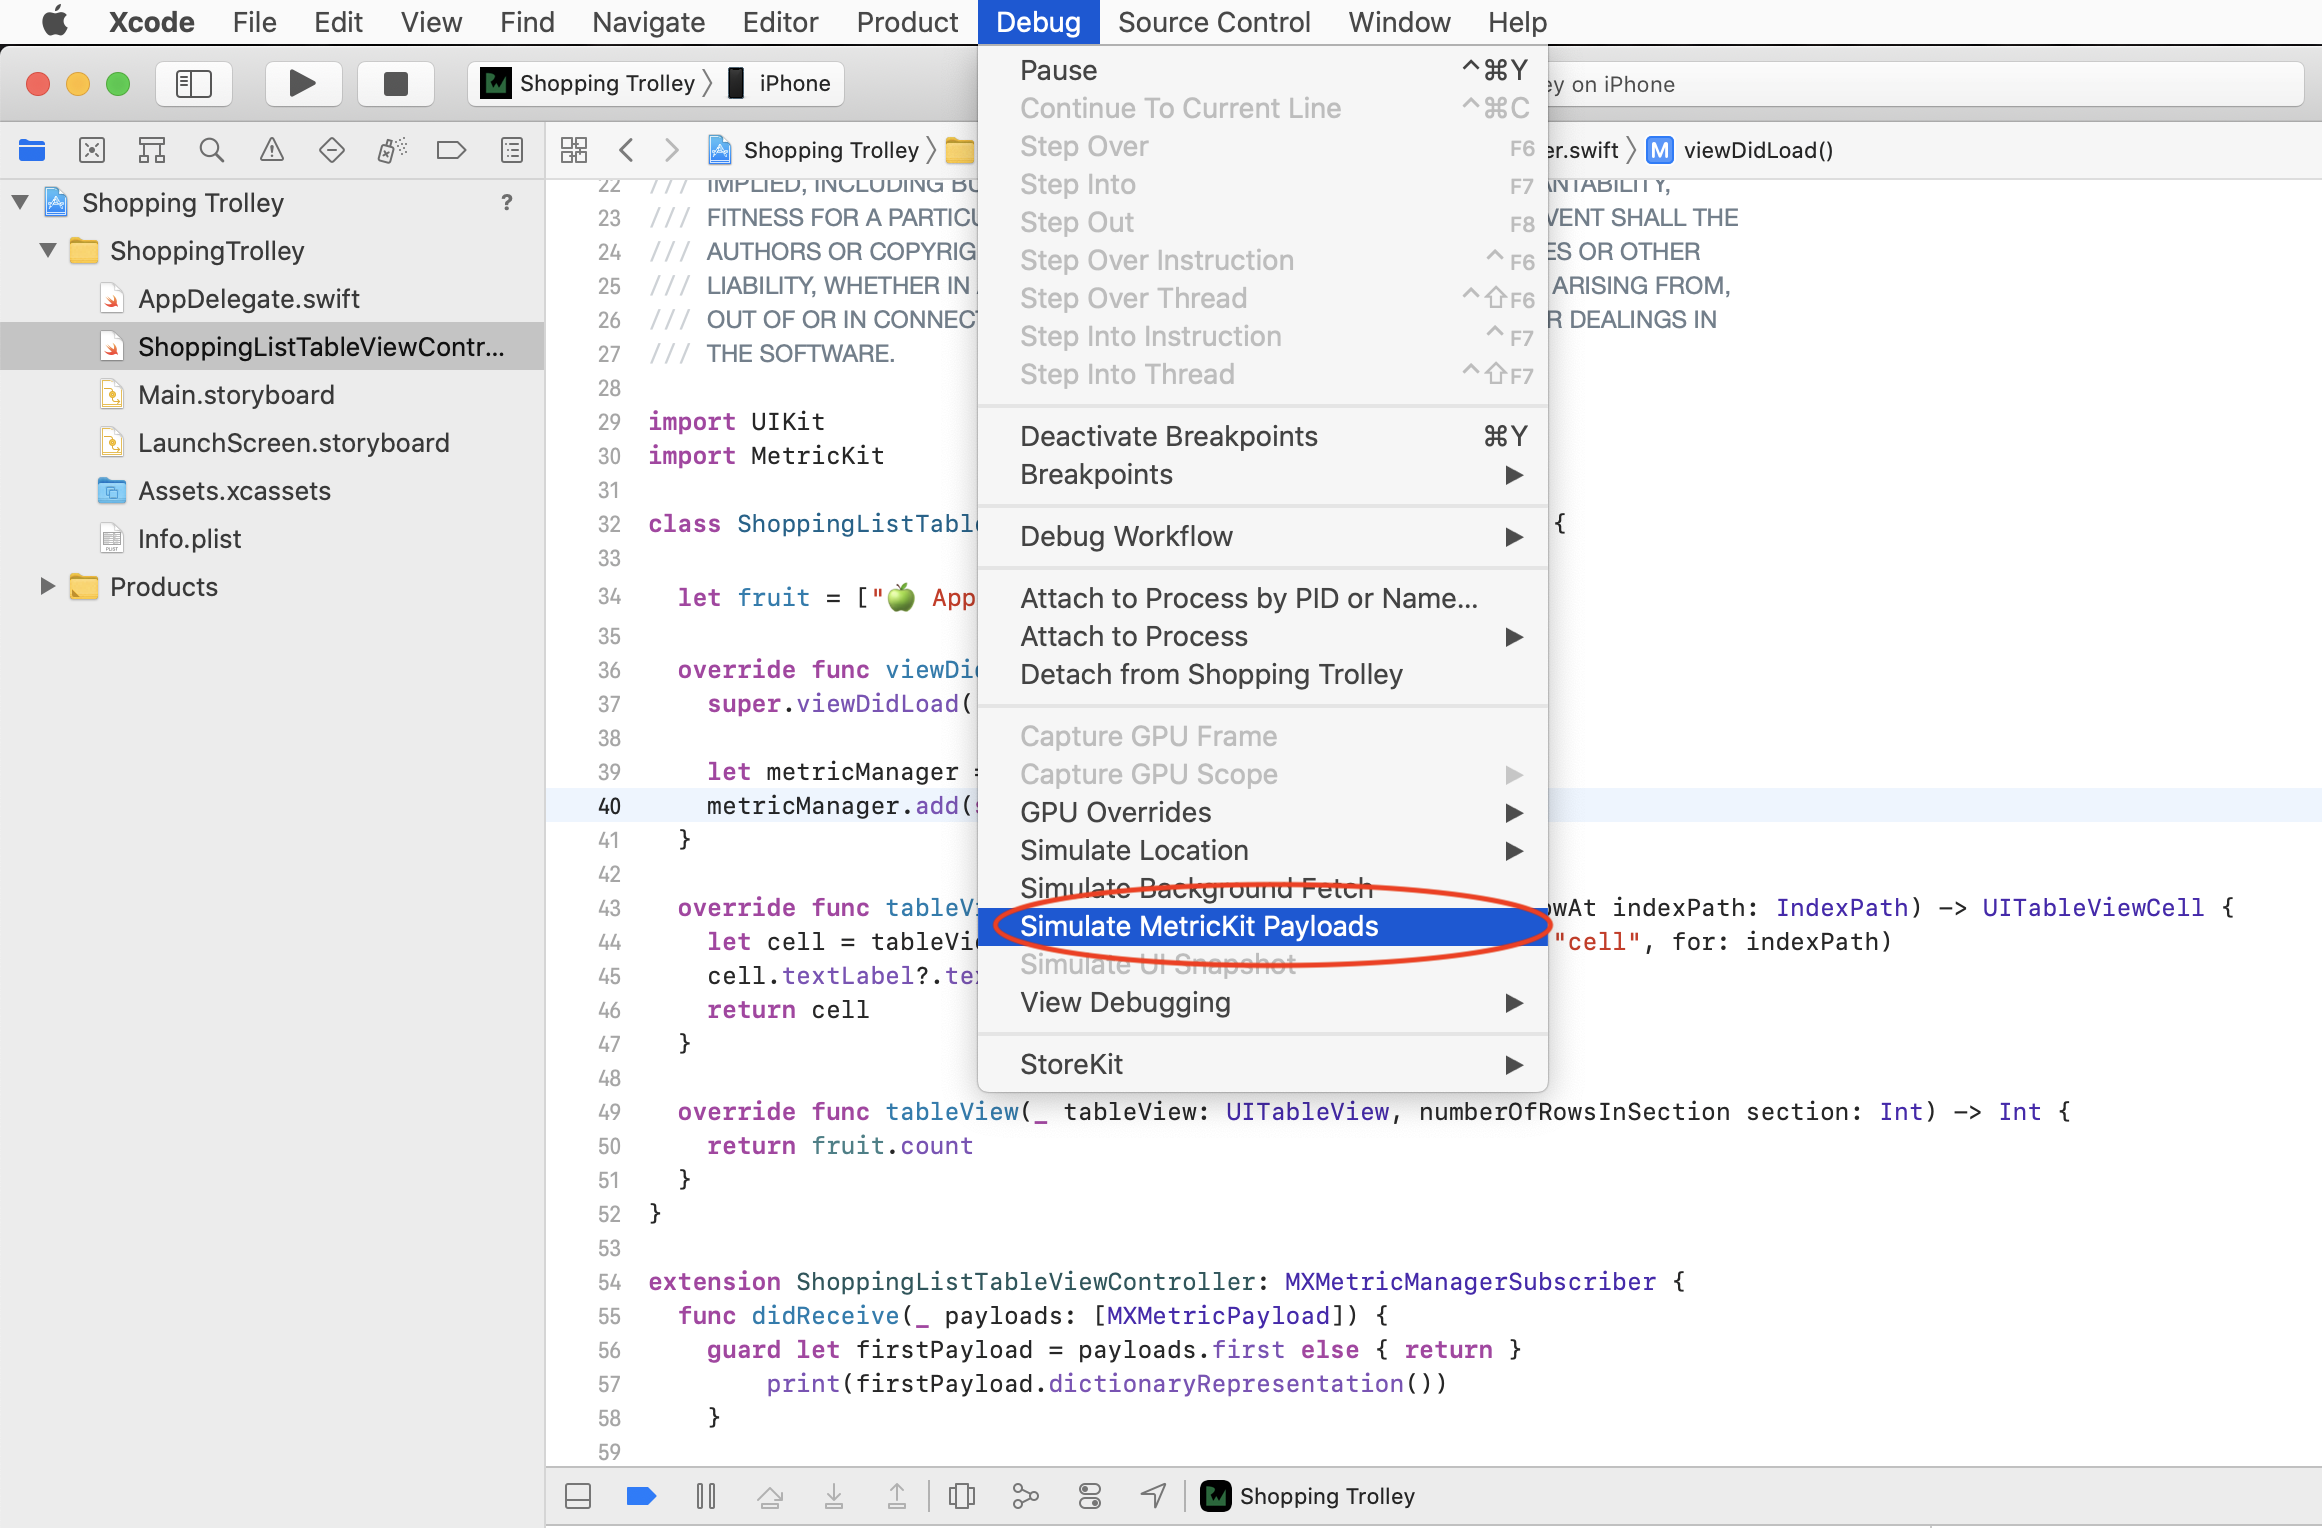 selecting Simulate MetricKit Payloads in Xcode